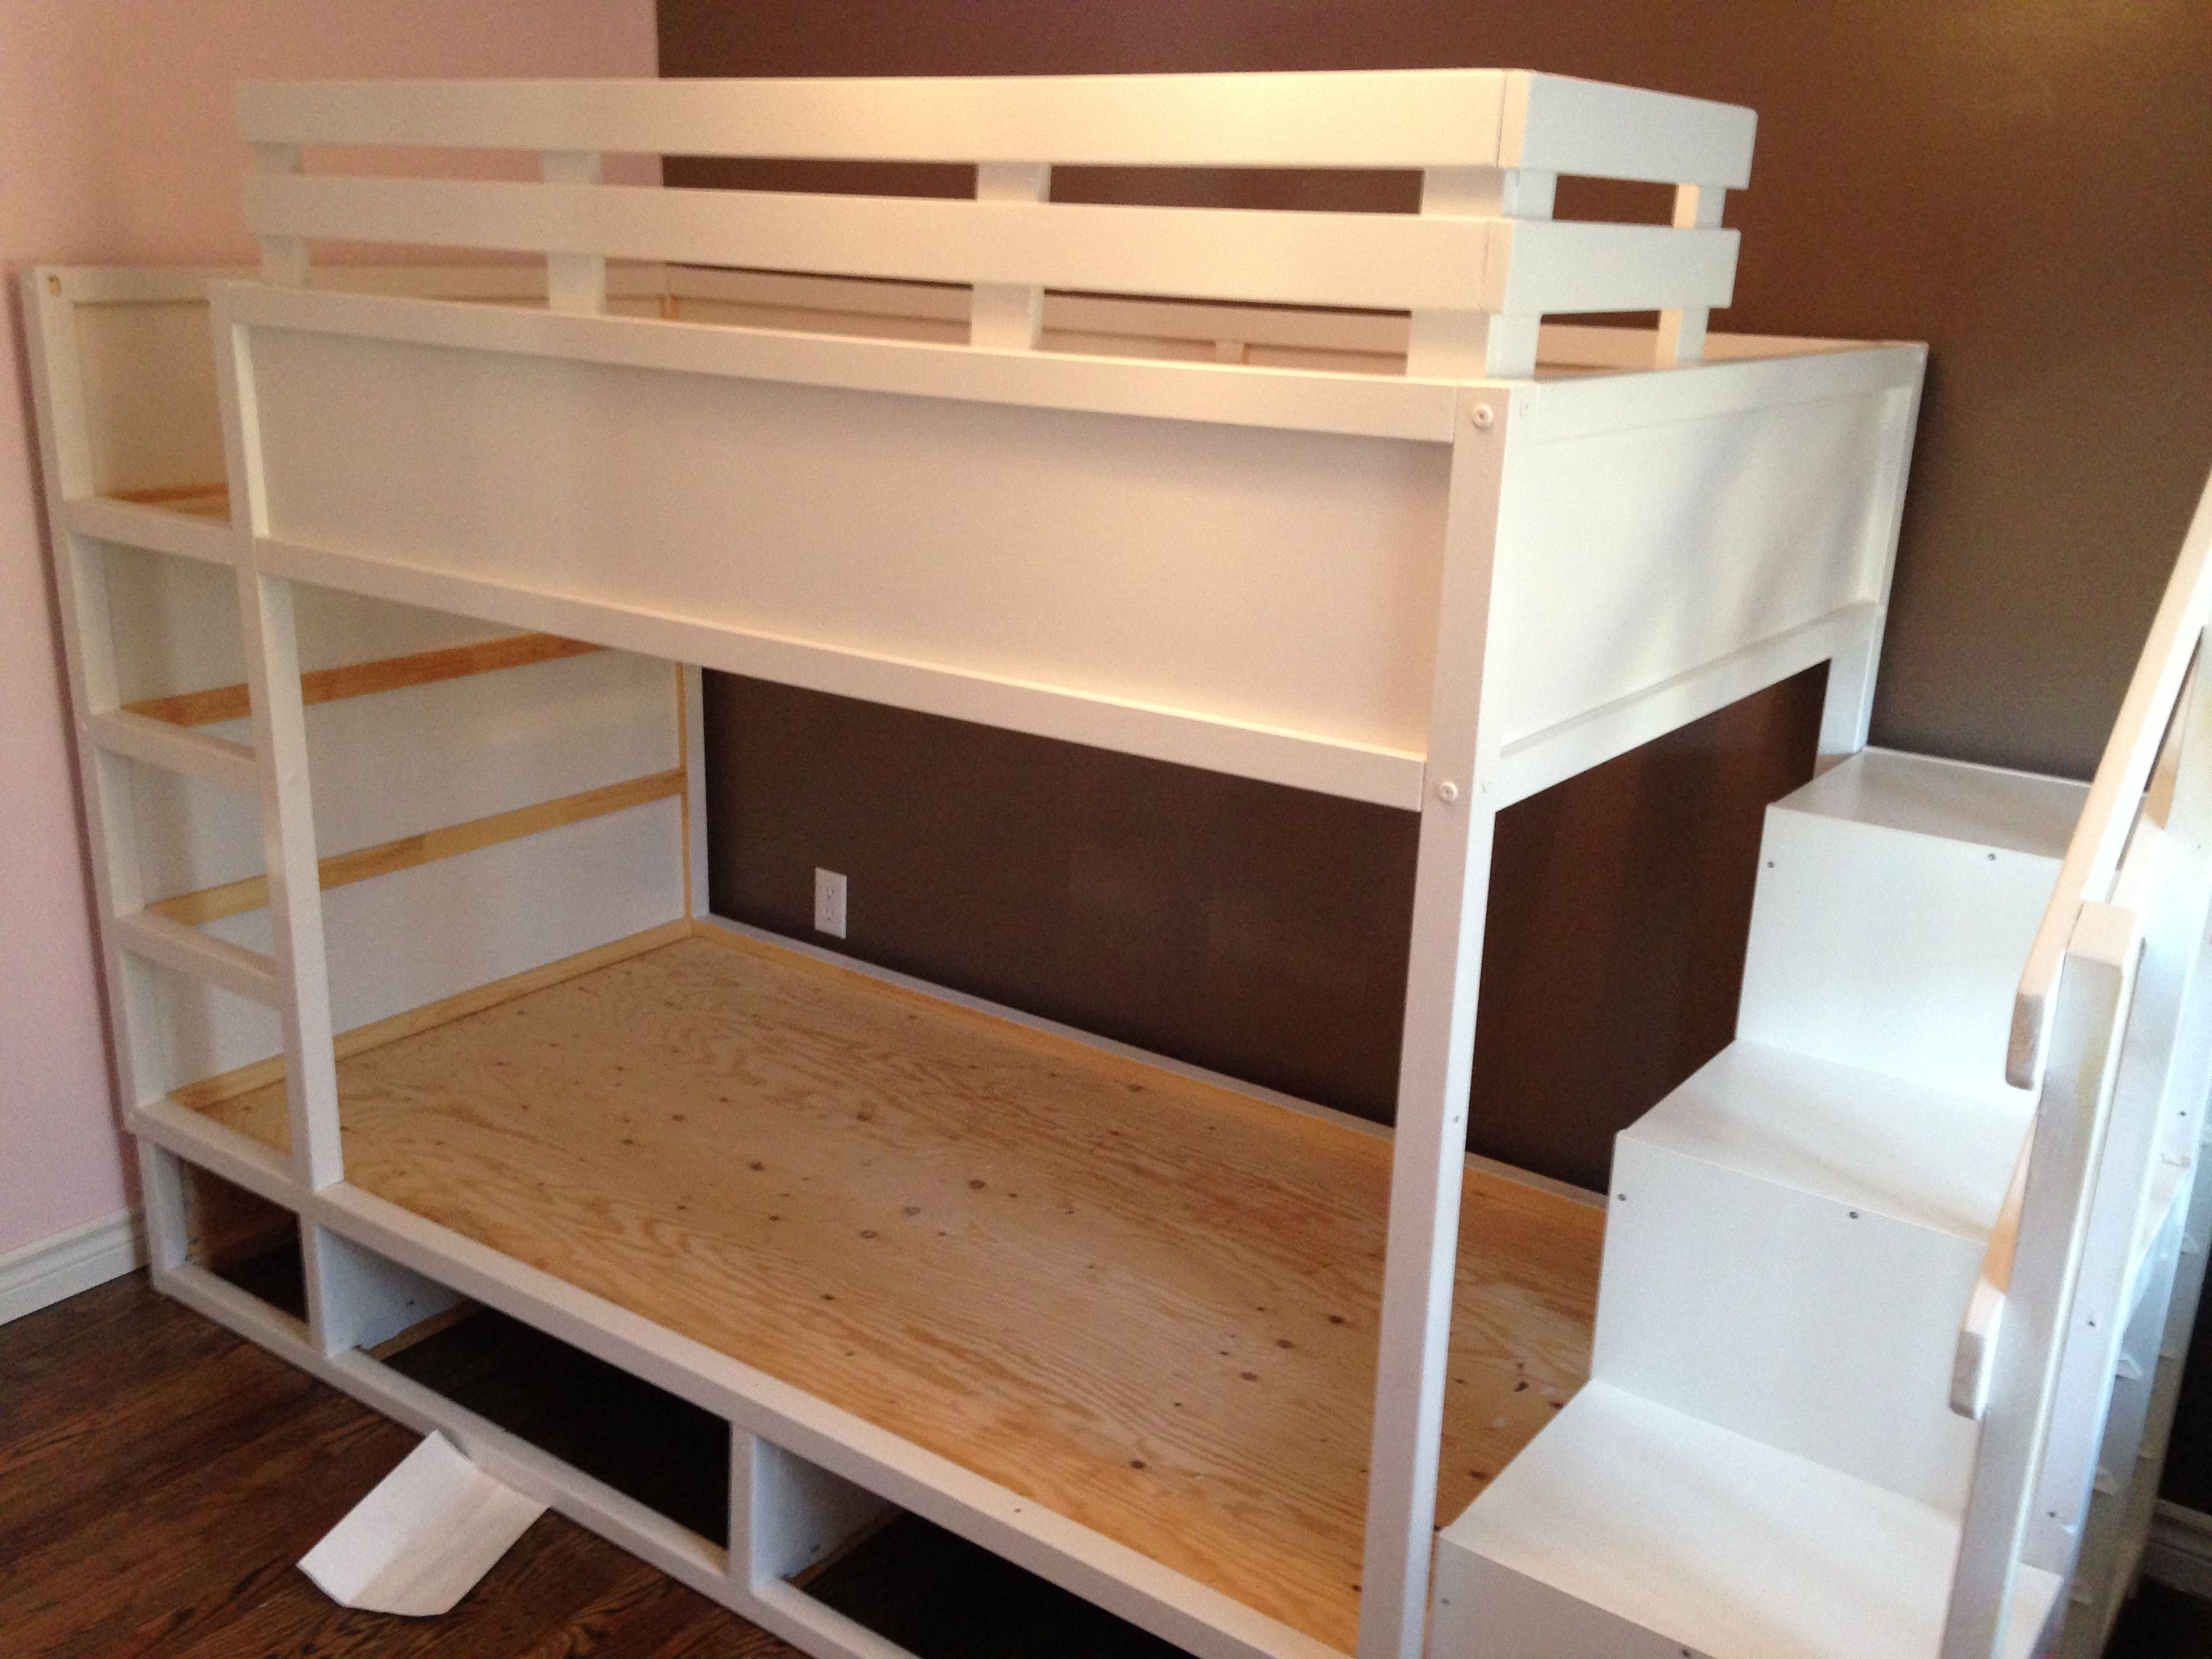 Ikea Bett Mit Stauraum Ikea Kura Lifted And Made Into A Bunk Bed, Plus Room For Under-bed | Ikea Kura Bett, Kinder Zimmer, Bett Kinderzimmer